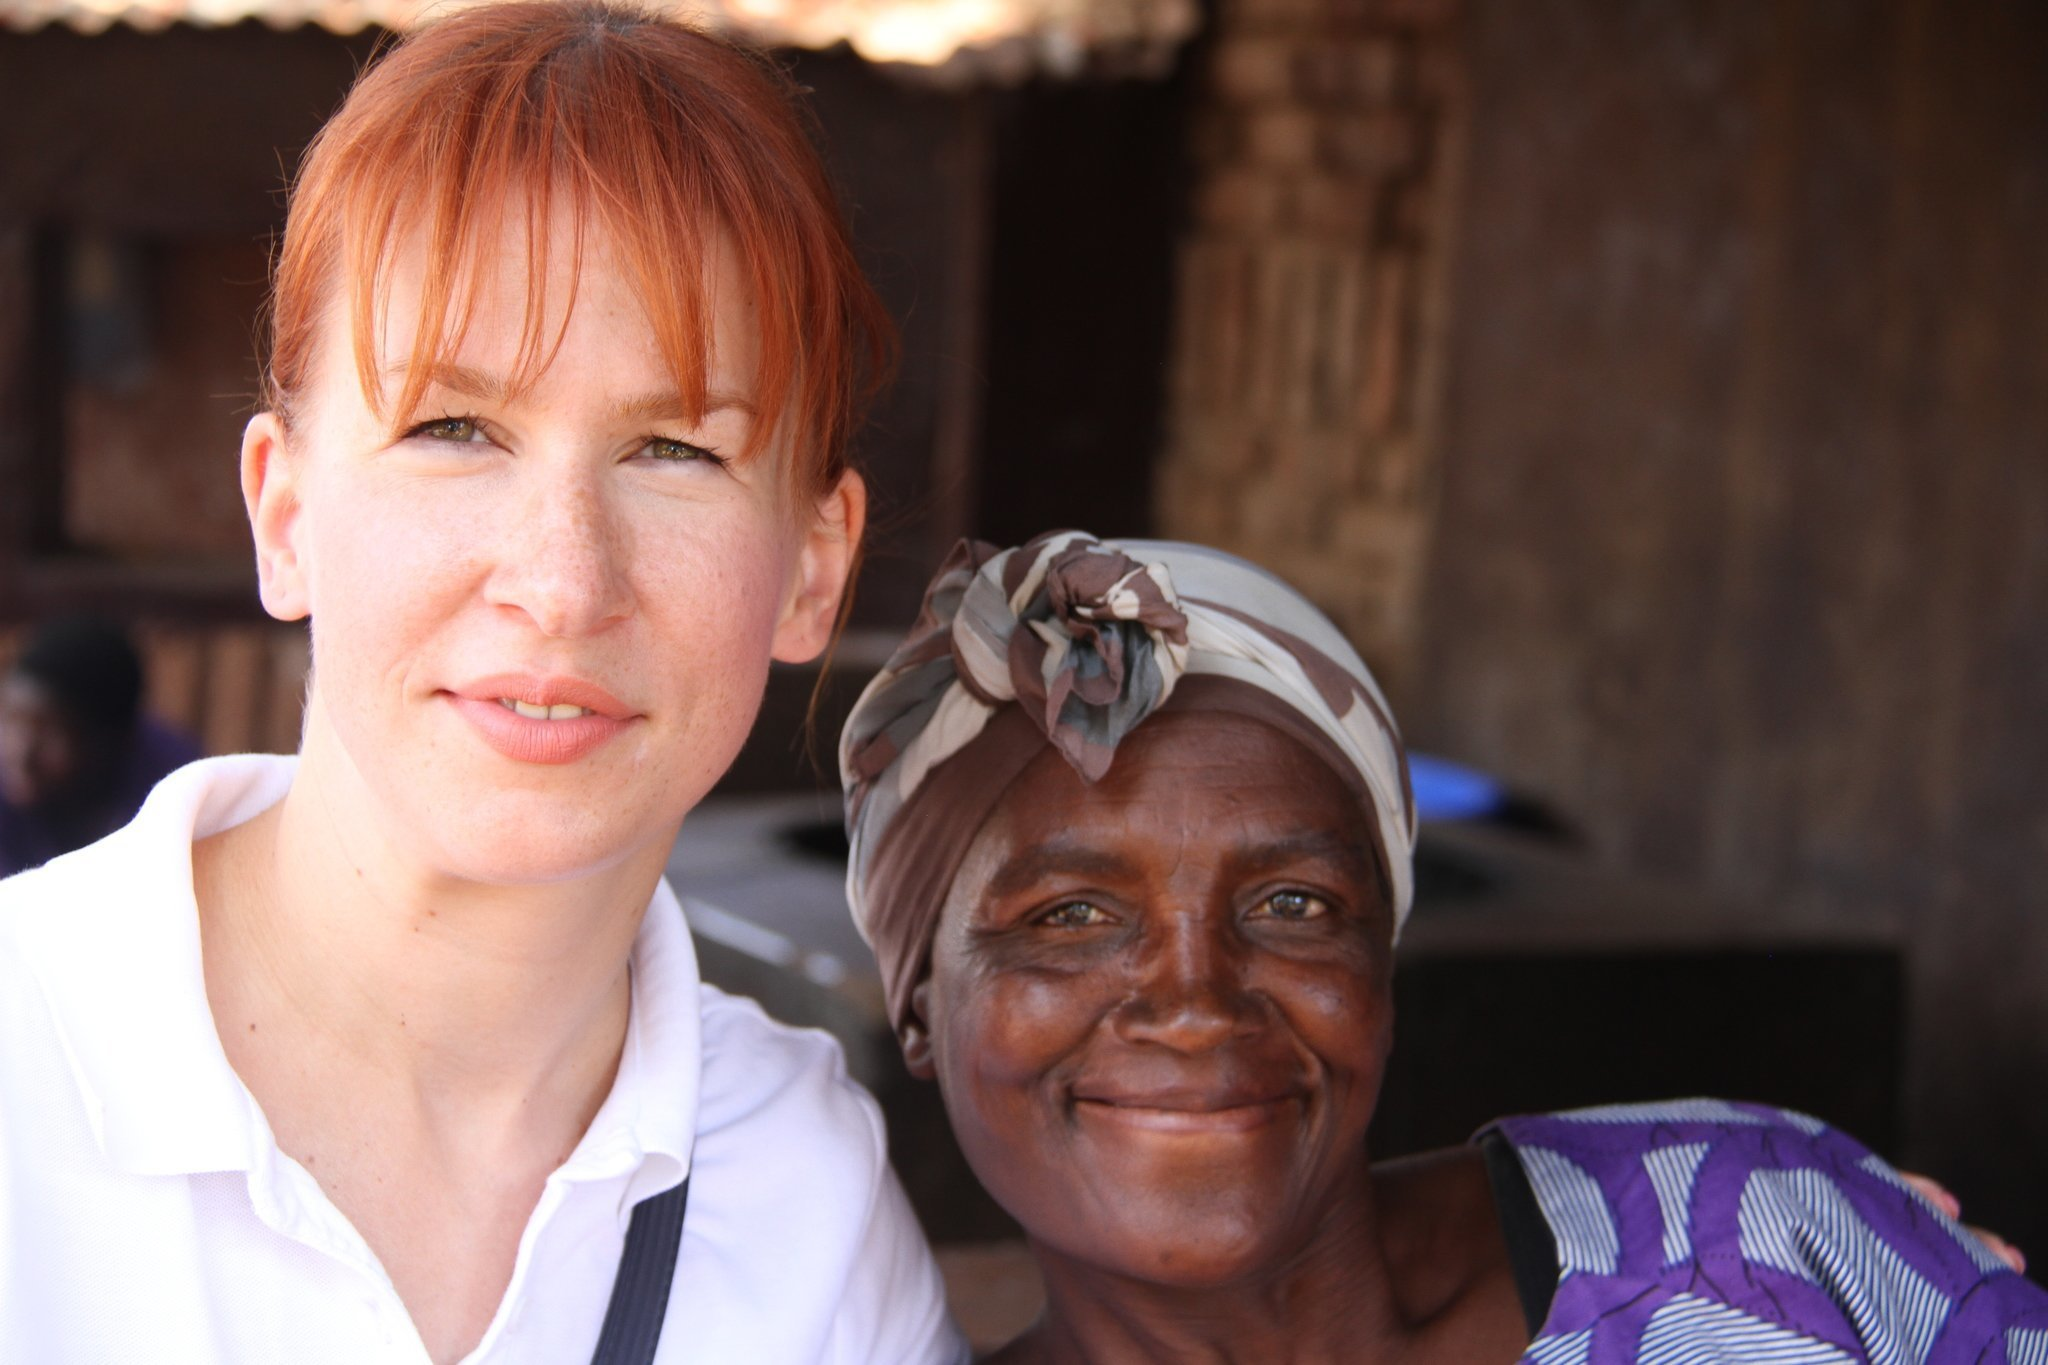 The experiences of Hungarian doctors in Malawi